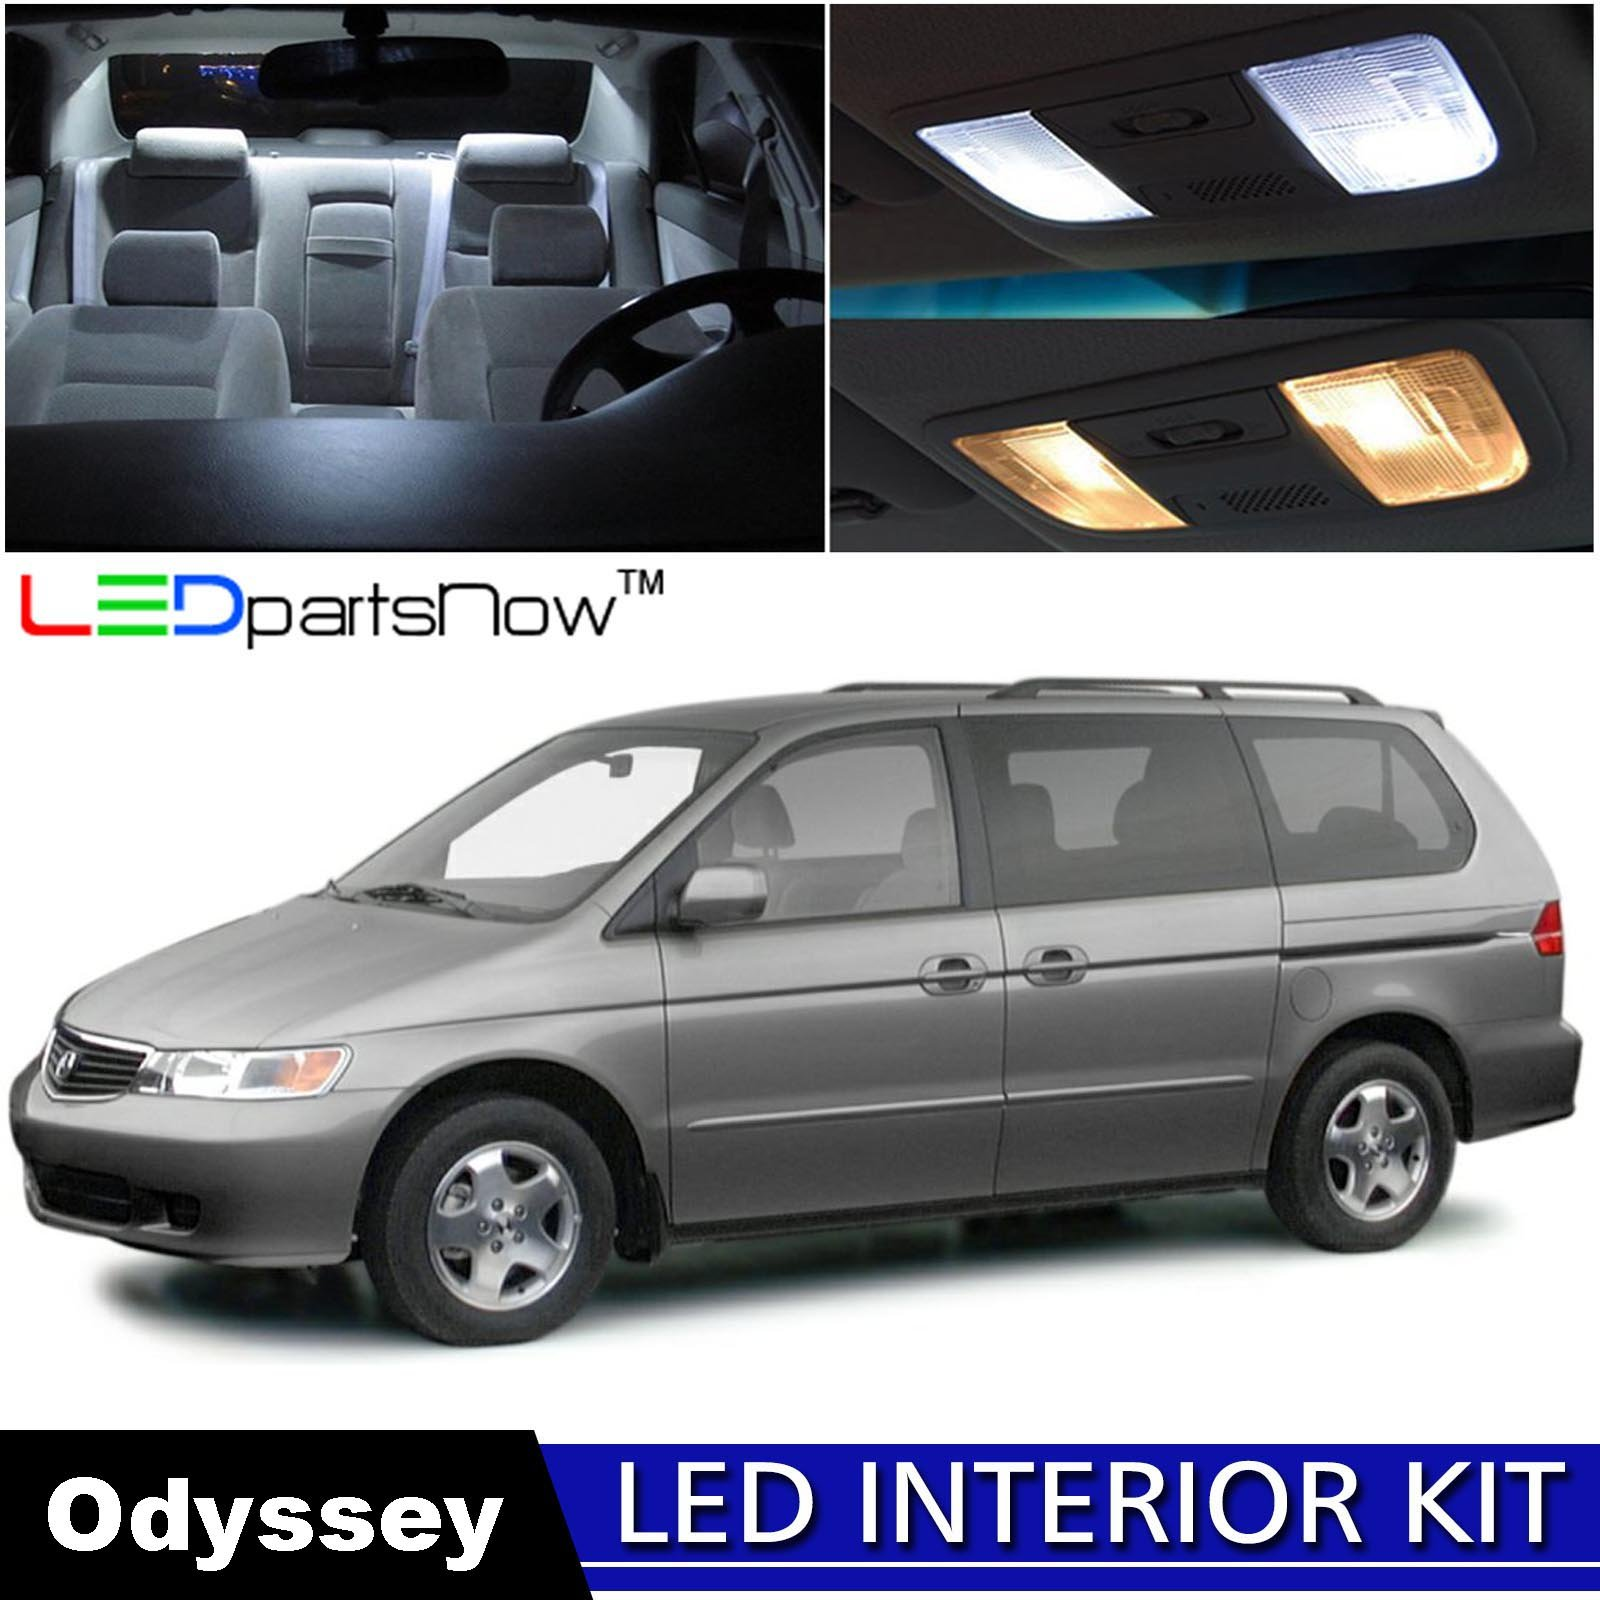 LEDpartsNow 1999-2004 Honda Odyssey LED Interior Lights Accessories Replacement Package Kit (13 Pieces), WHITE